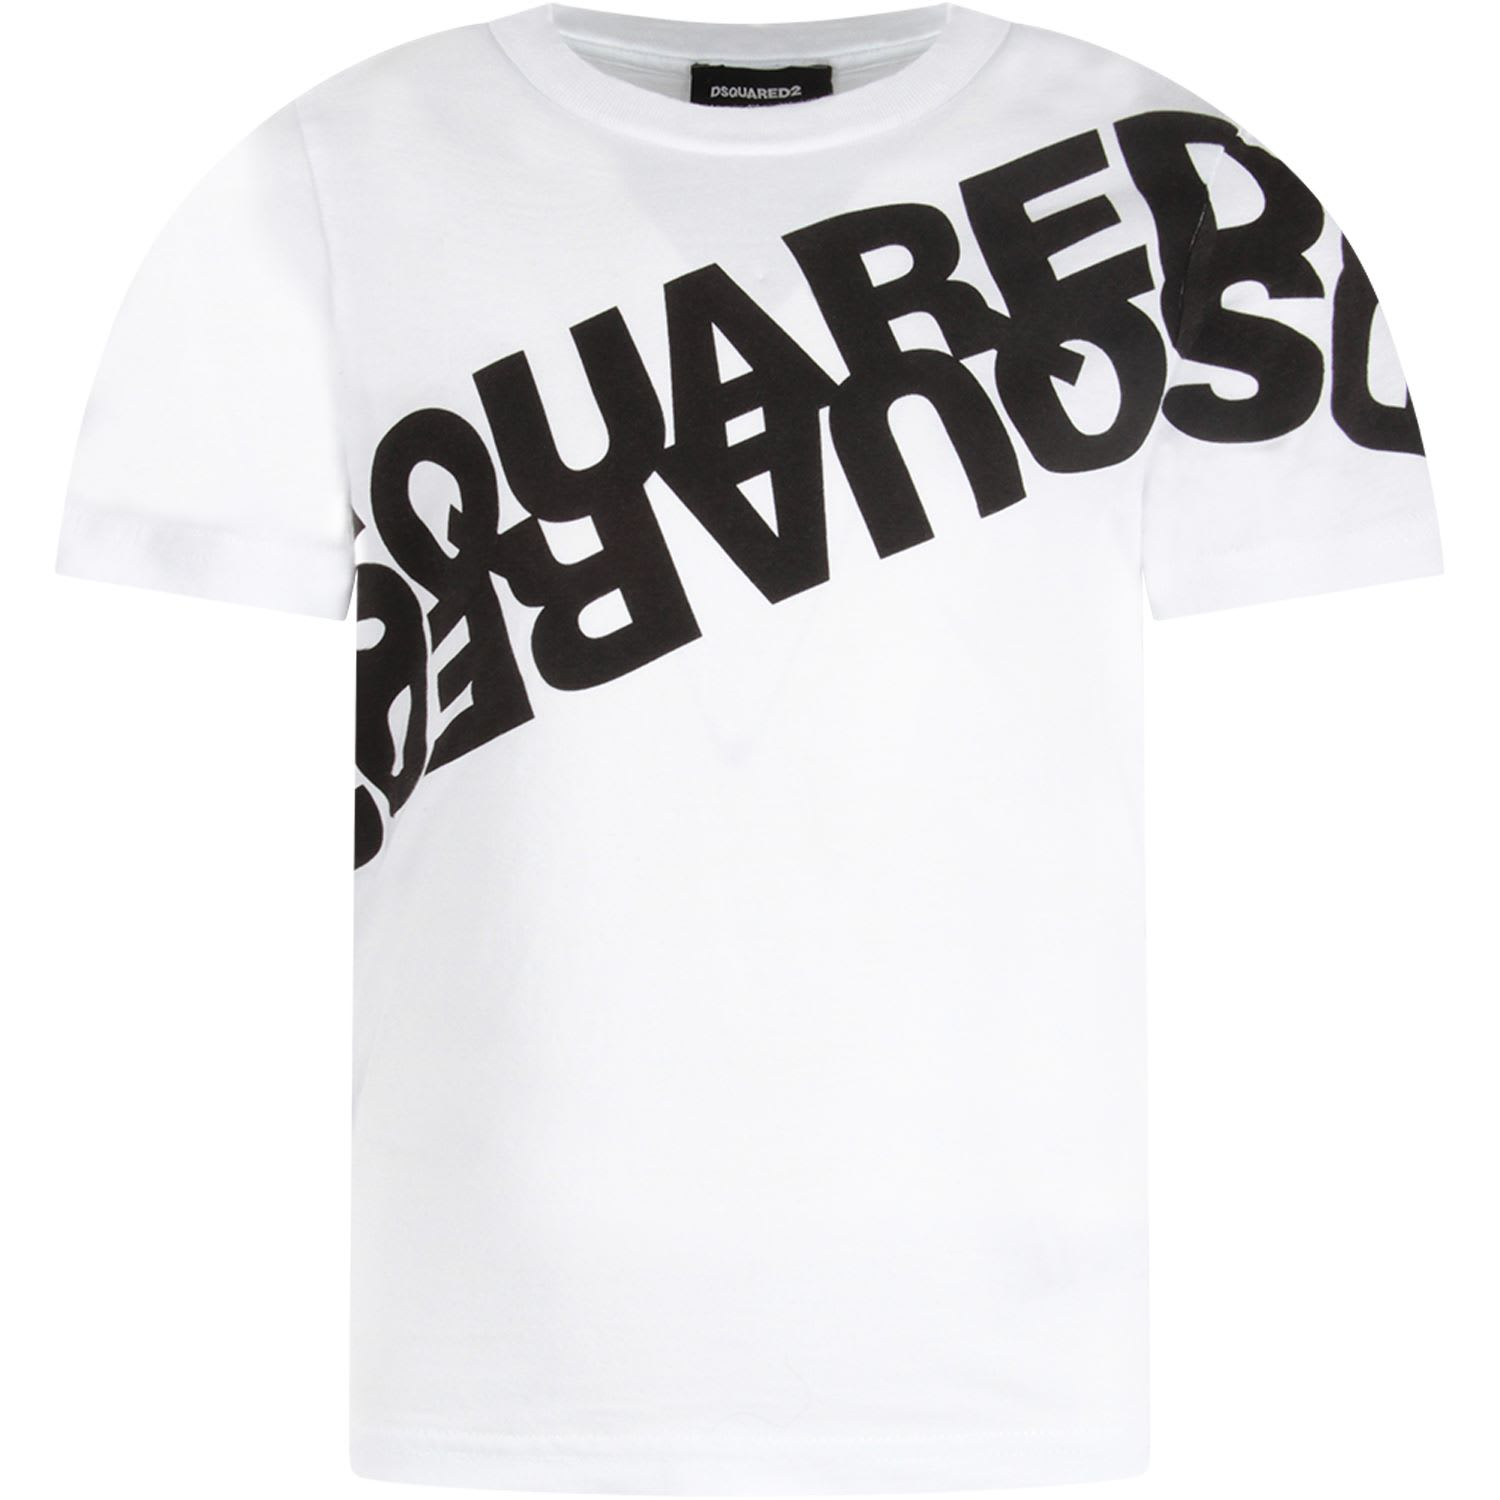 Dsquared2 White T-shirt For Kid With Black Logo